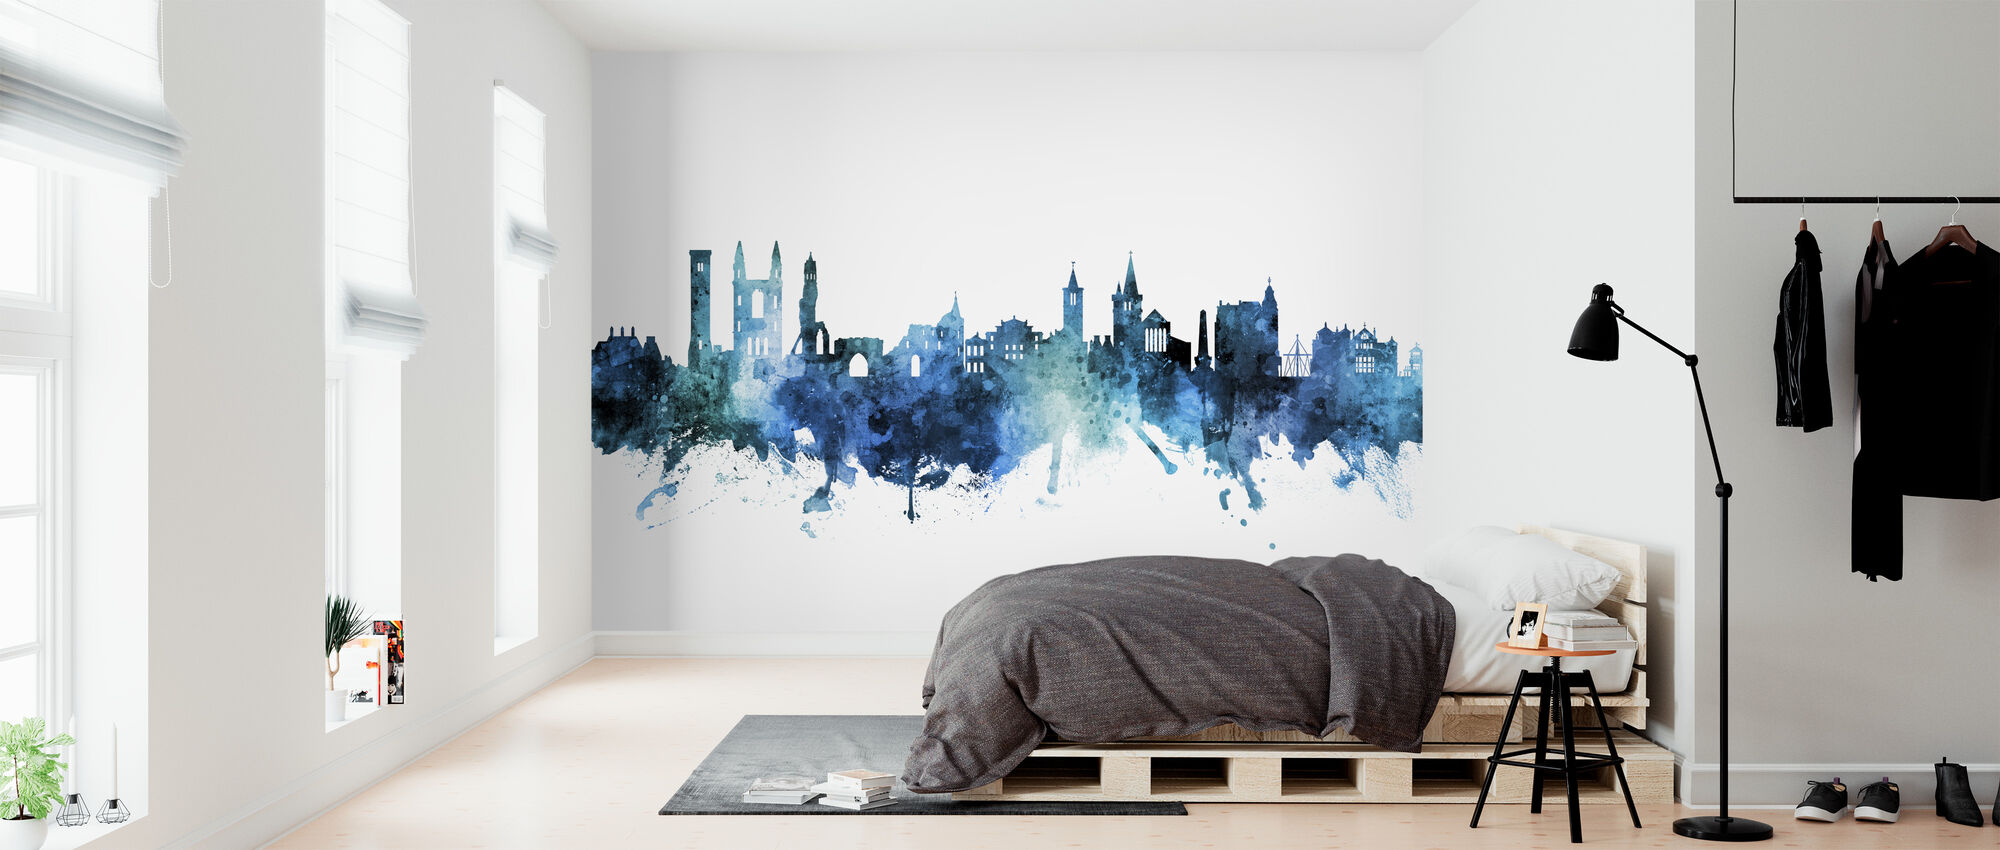 St Andrews Scotland Skyline - Wallpaper - Bedroom